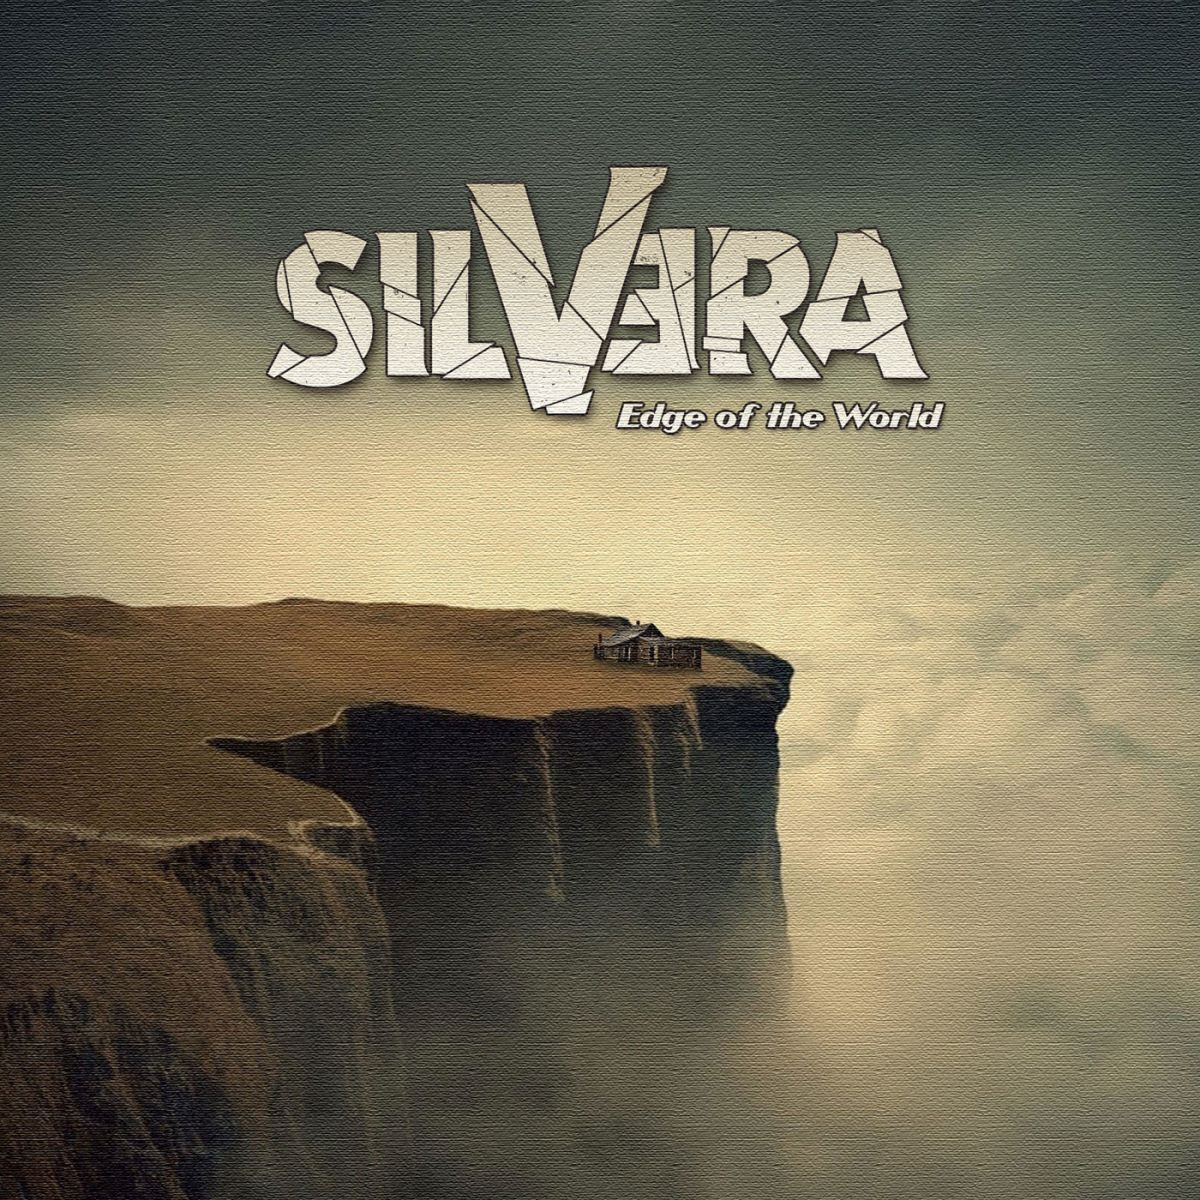 silvera - Edge Of The World - album cover